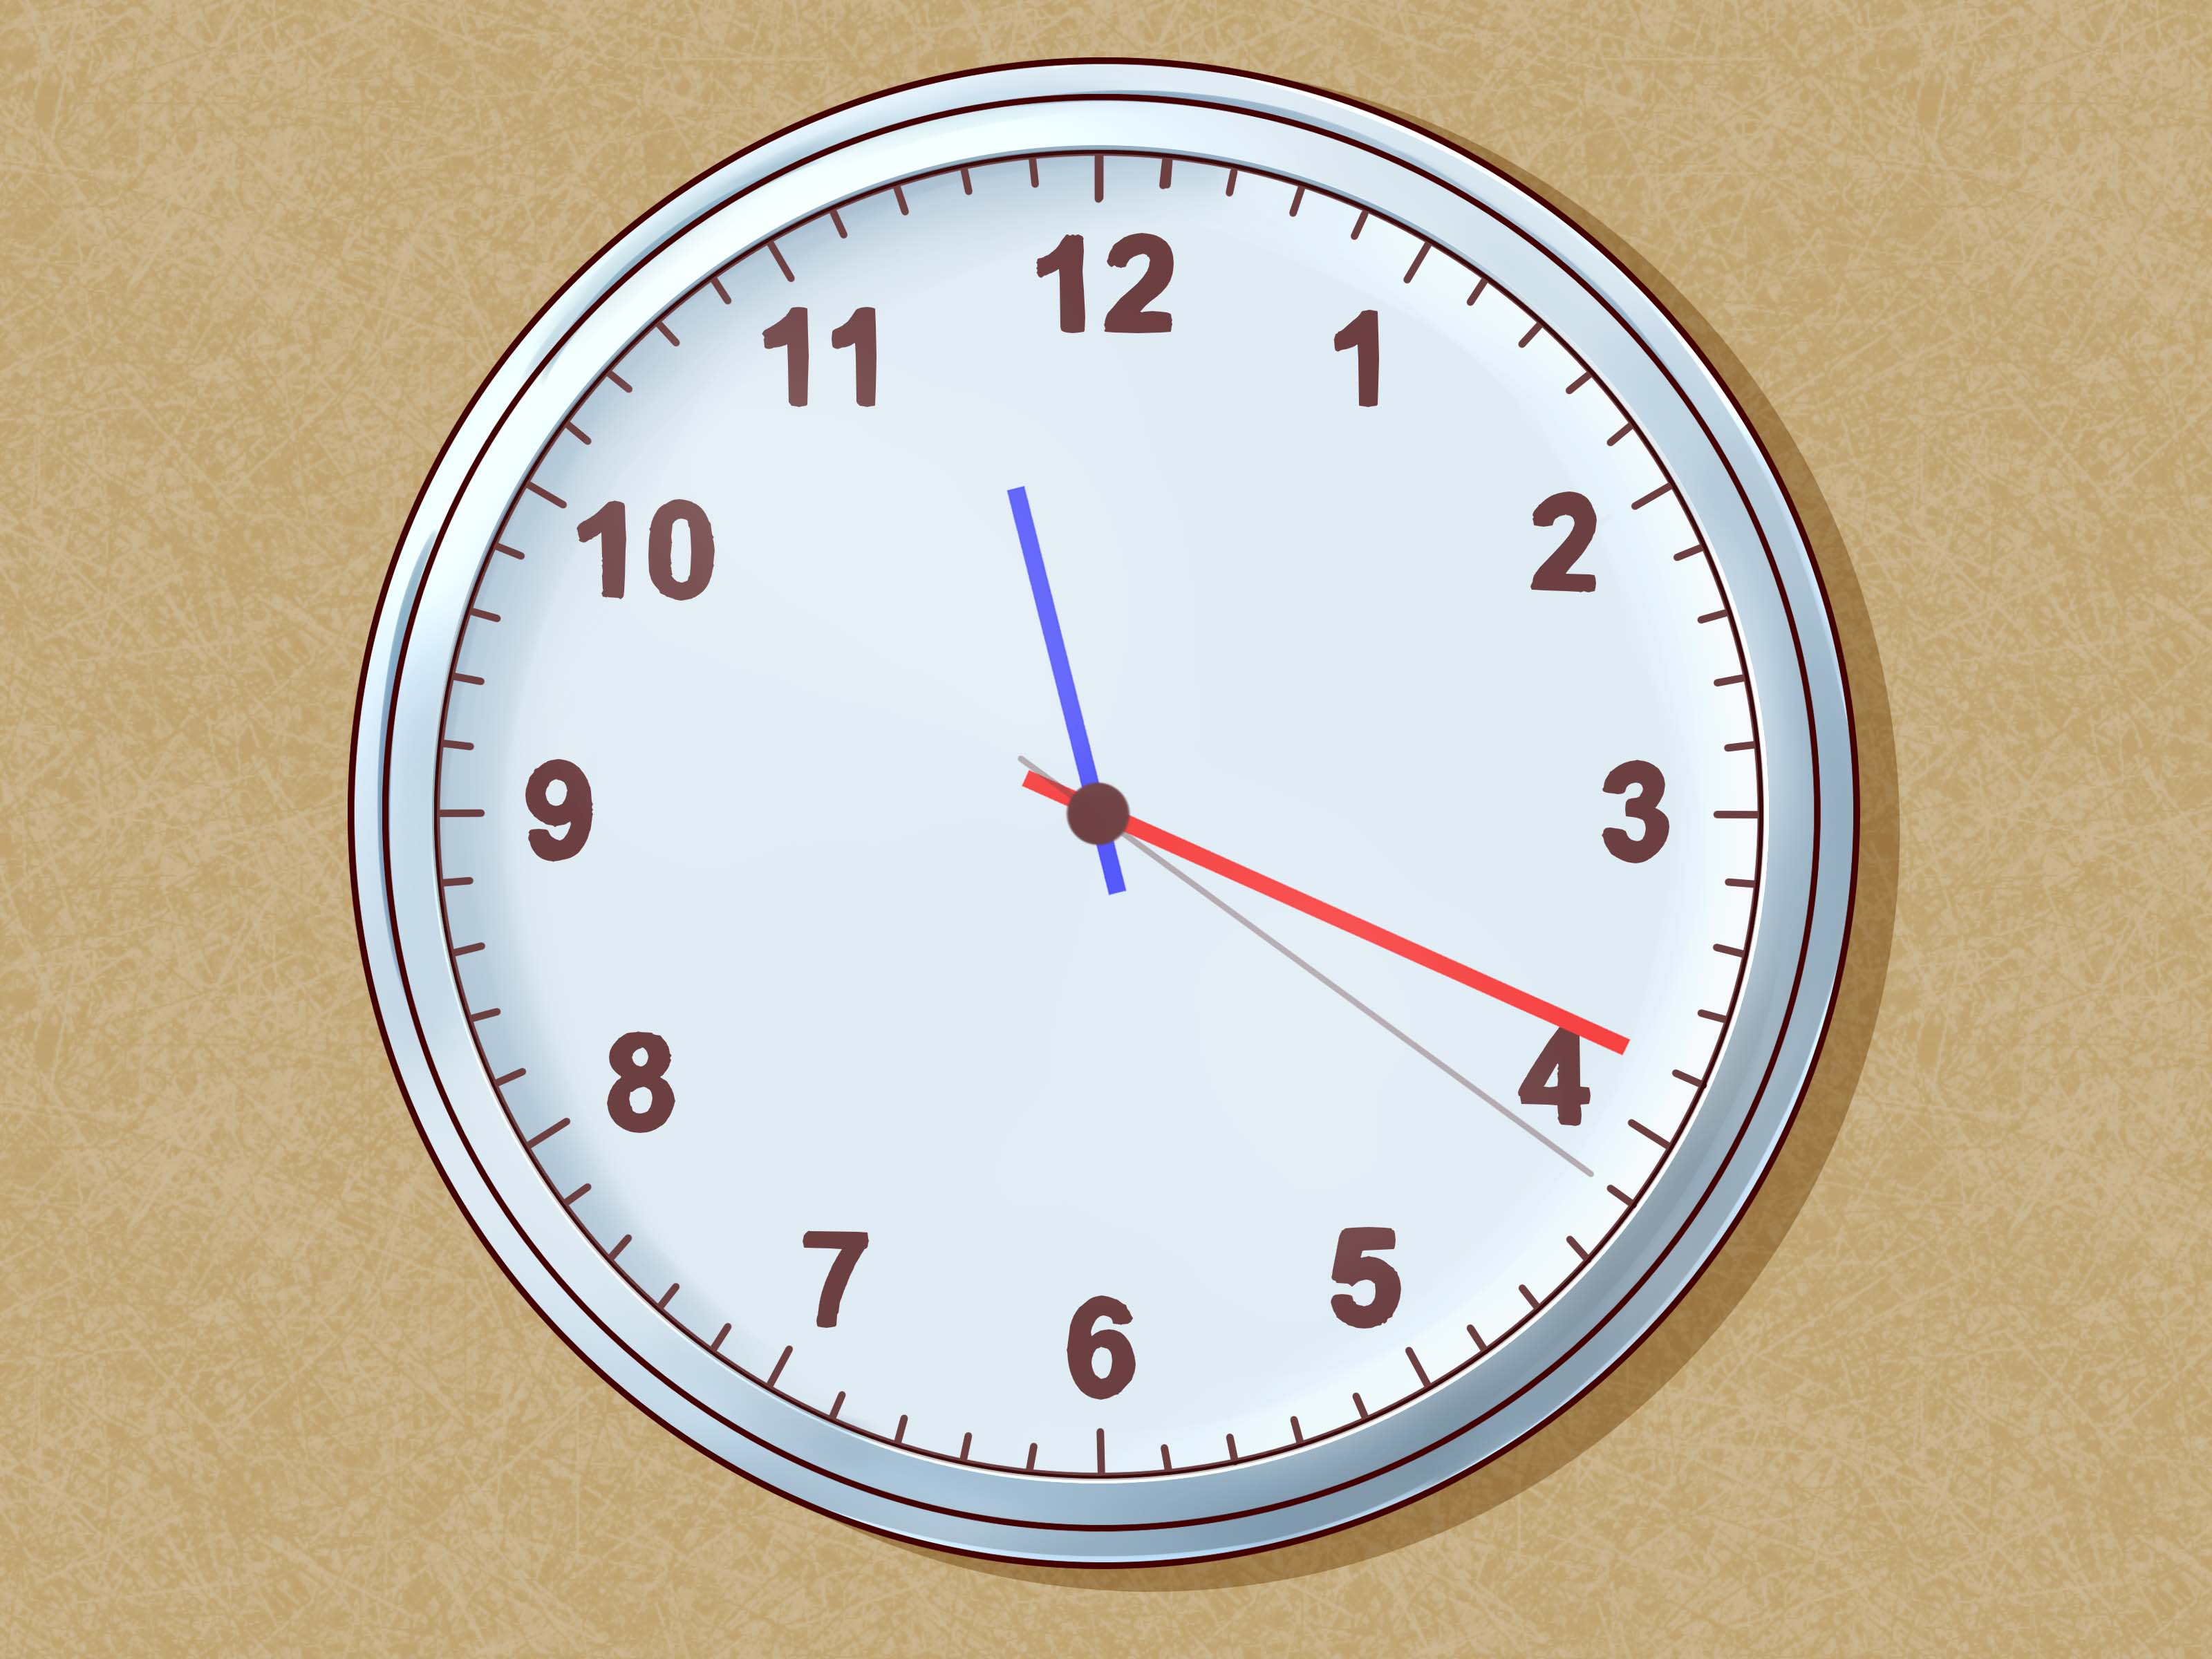 How To Tell Time: 15 Steps (with Pictures)